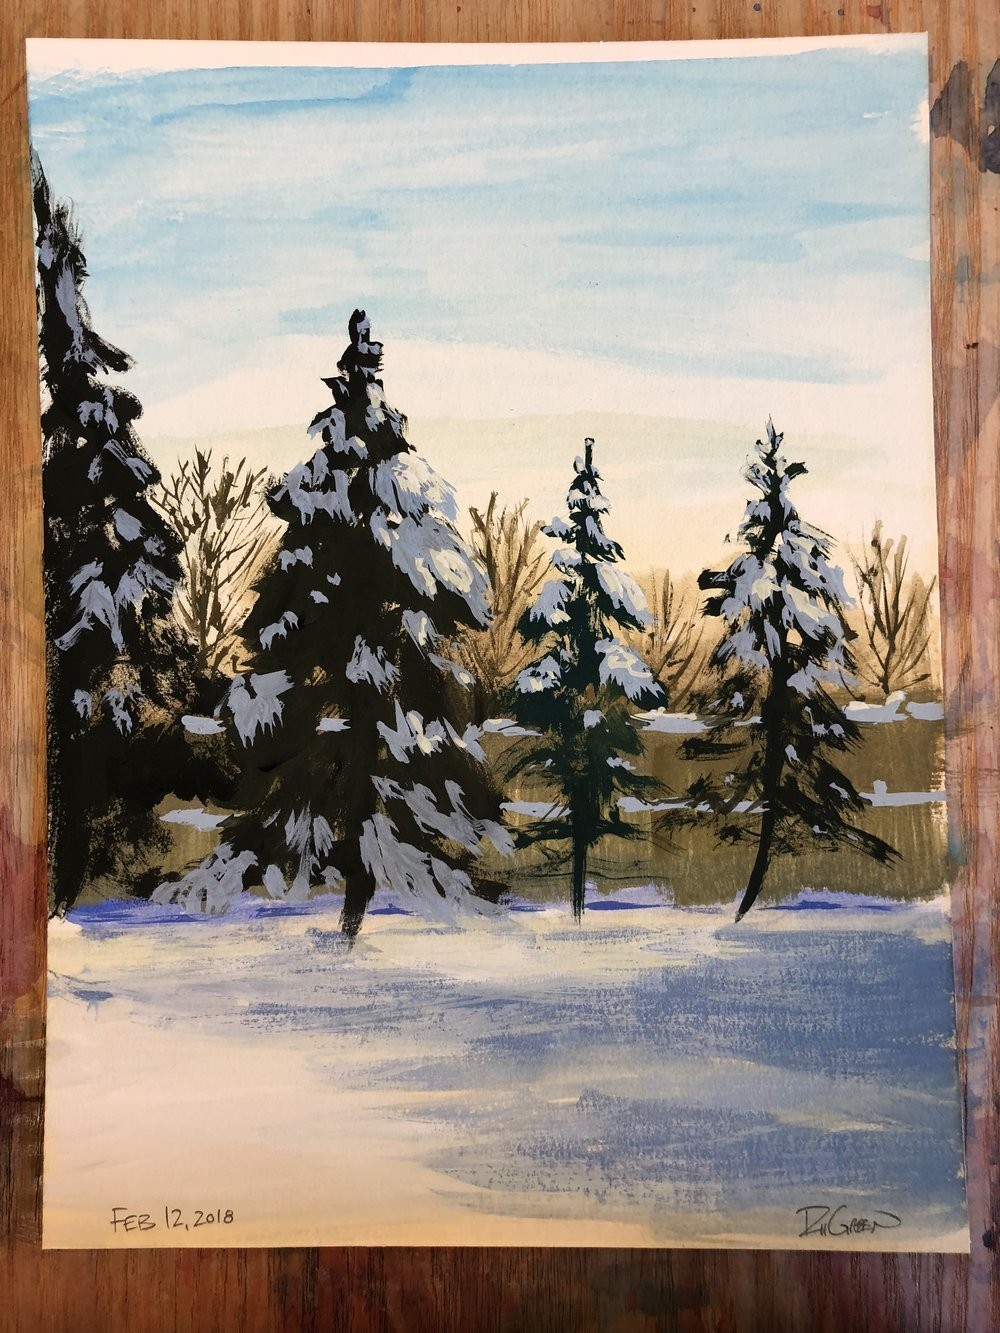 Winter Plein Air 02-12-18